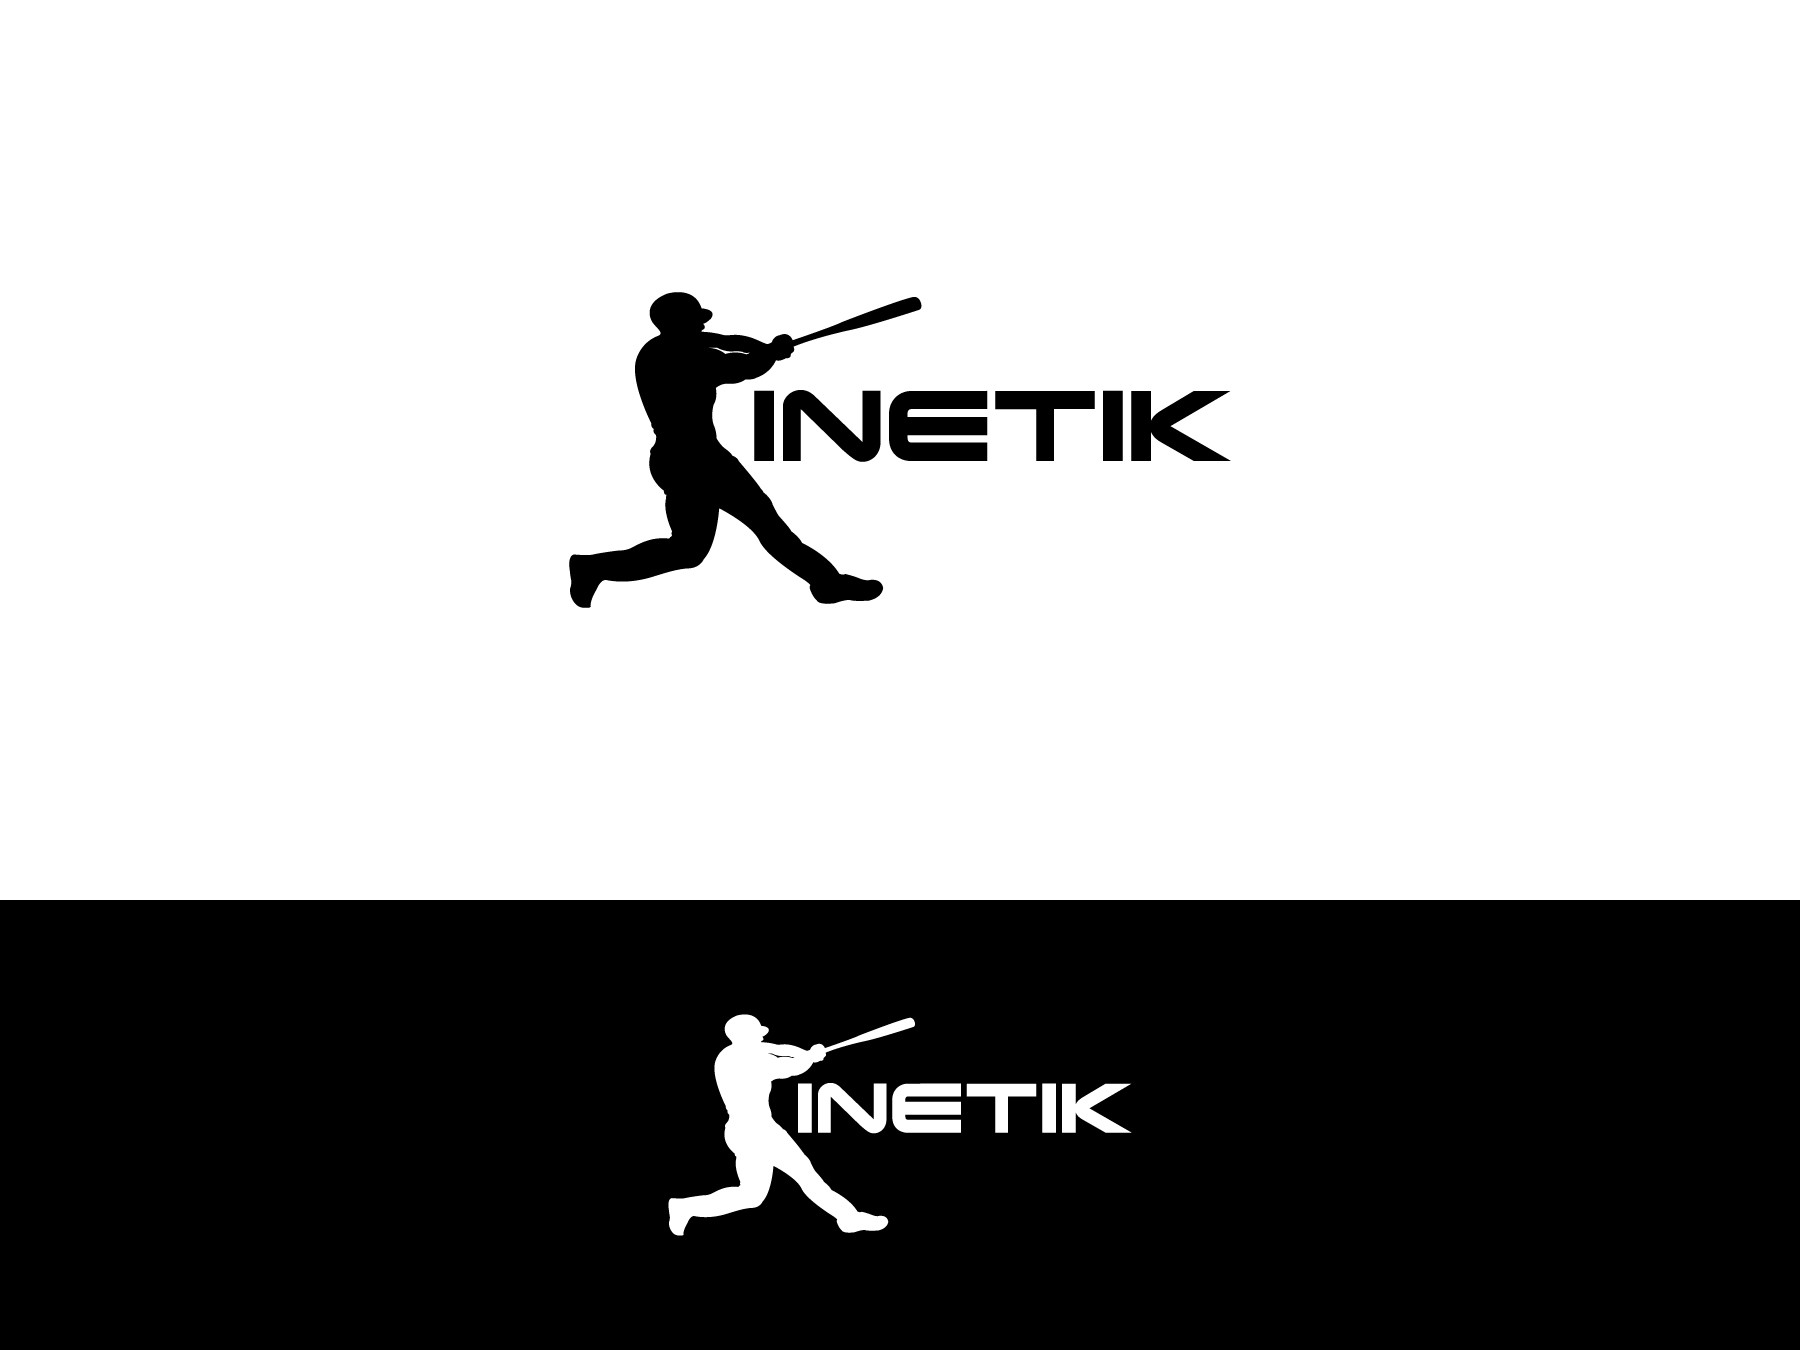 Get moving with a Kinetik design